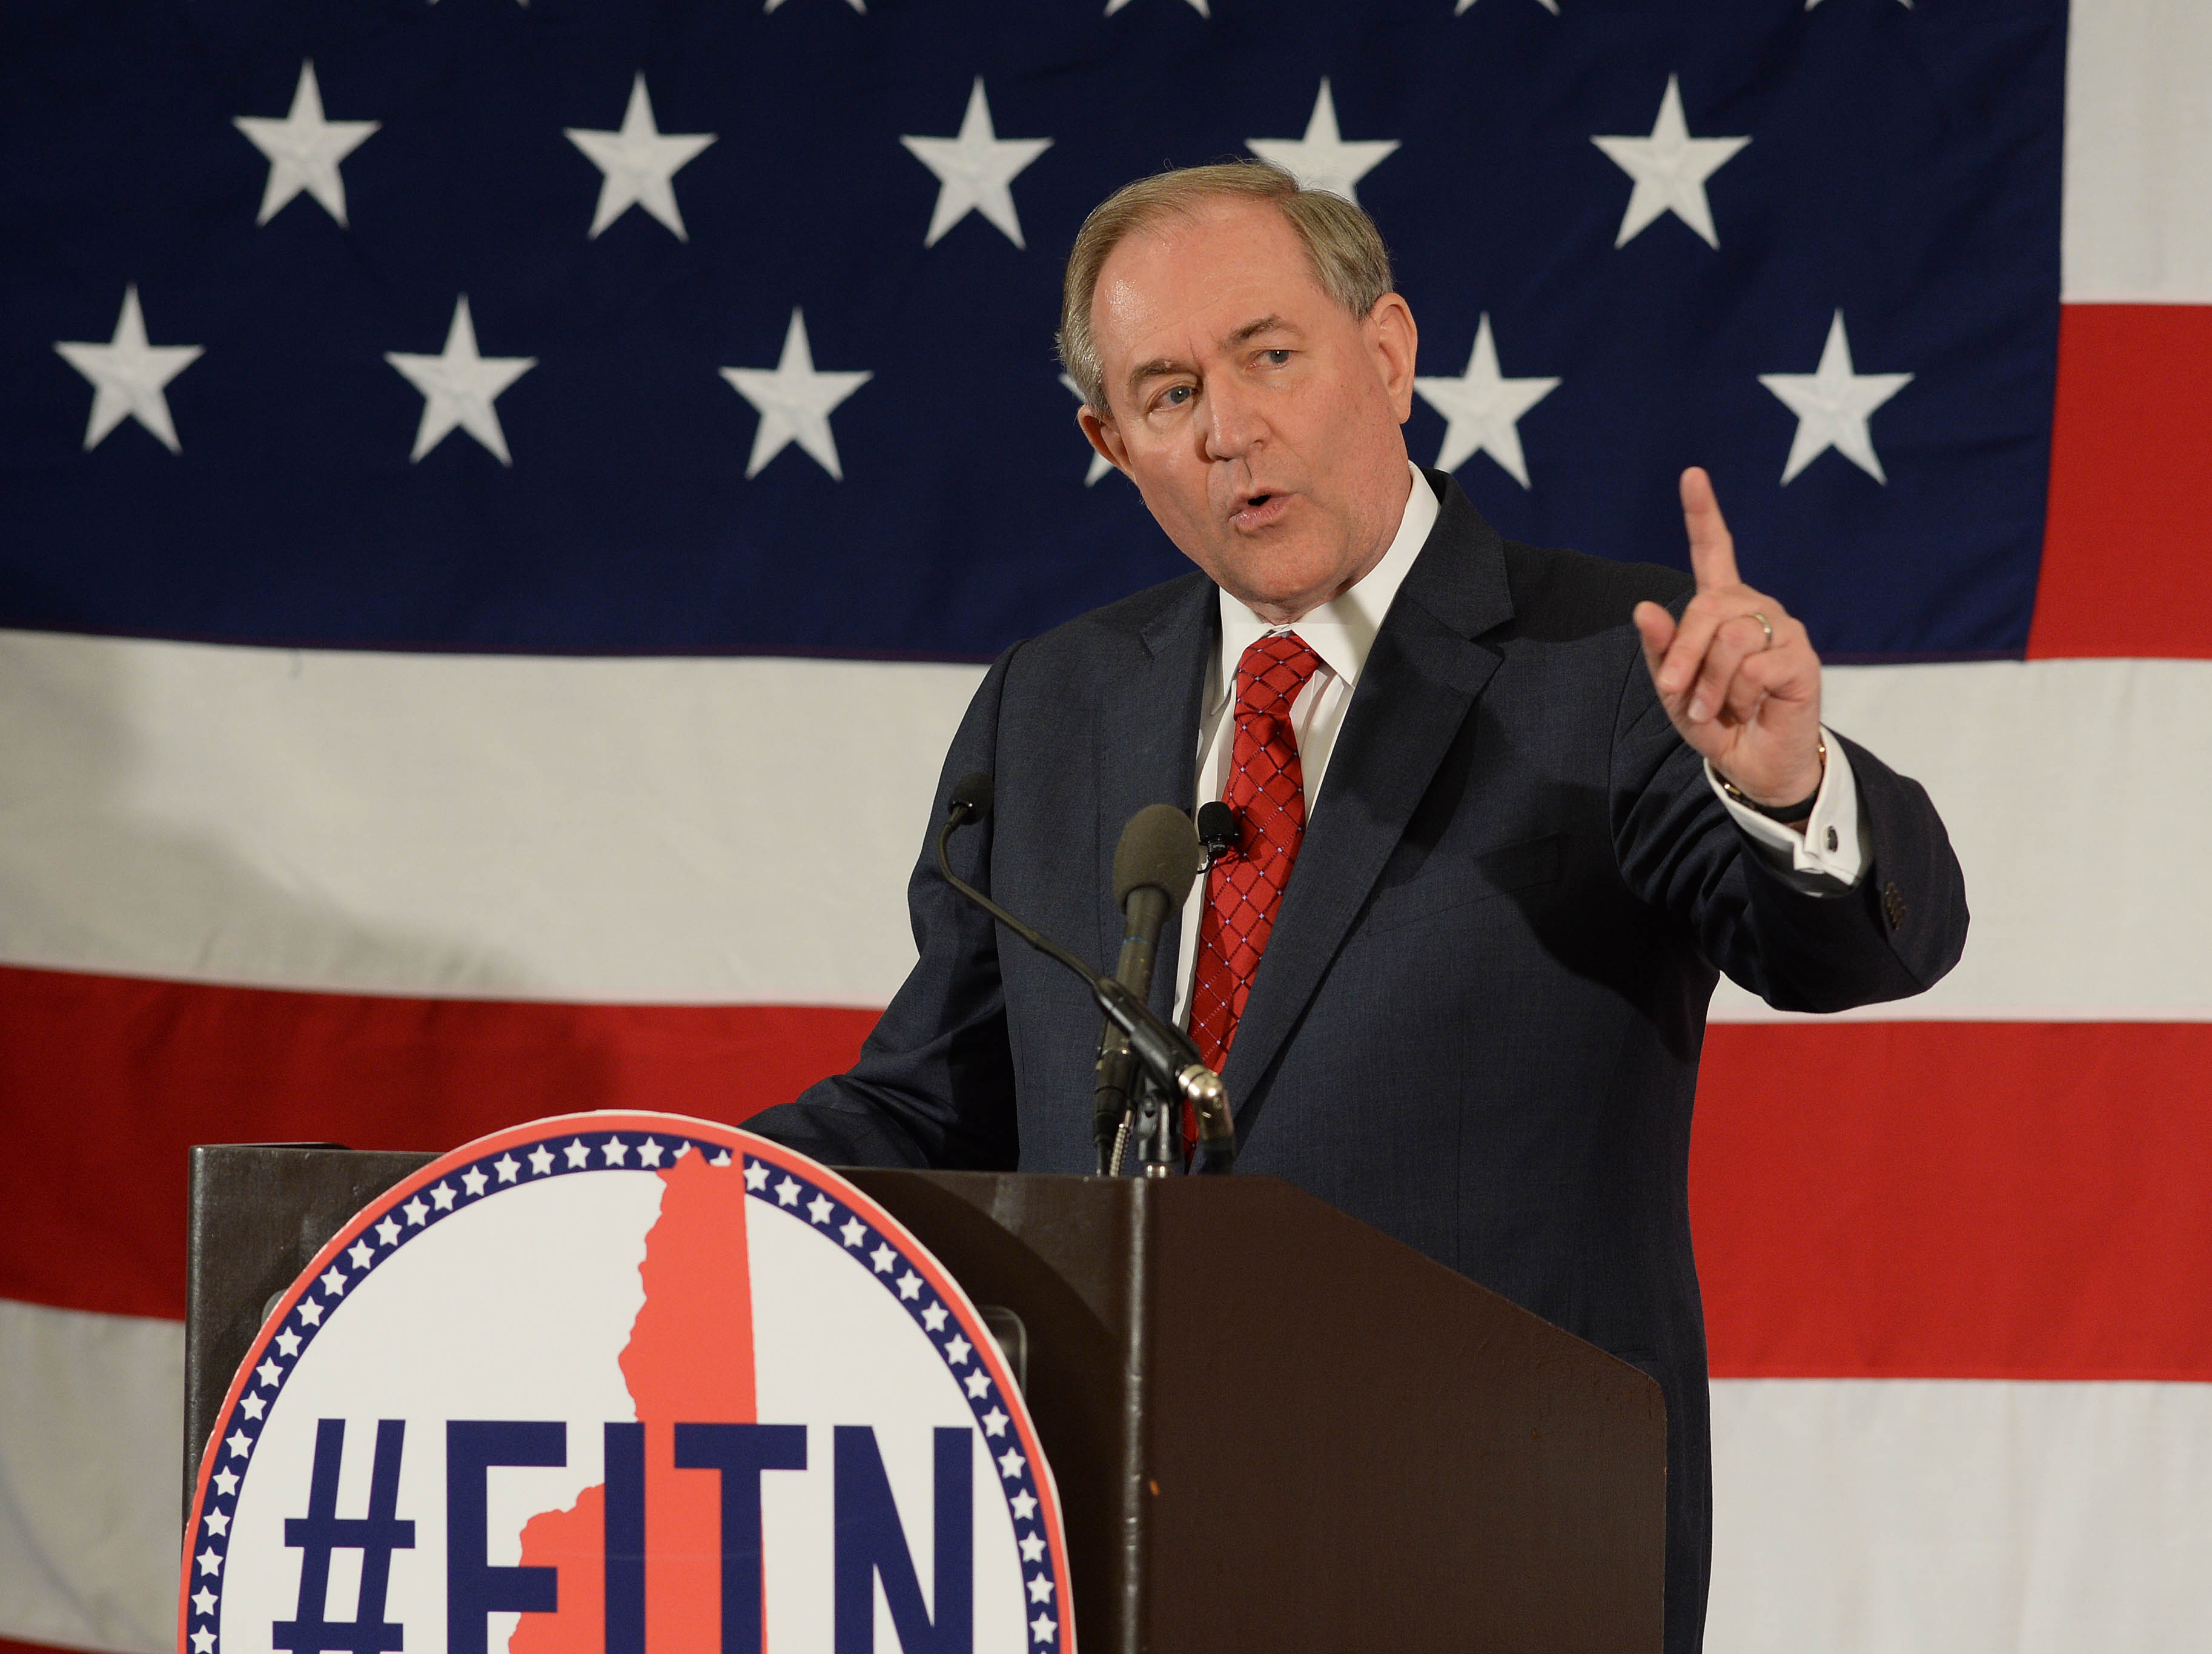 Former Virginia Gov. Jim Gilmore speaks at the First in the Nation Republican Leadership Summit on April 17, 2015, in Nashua, N.H.